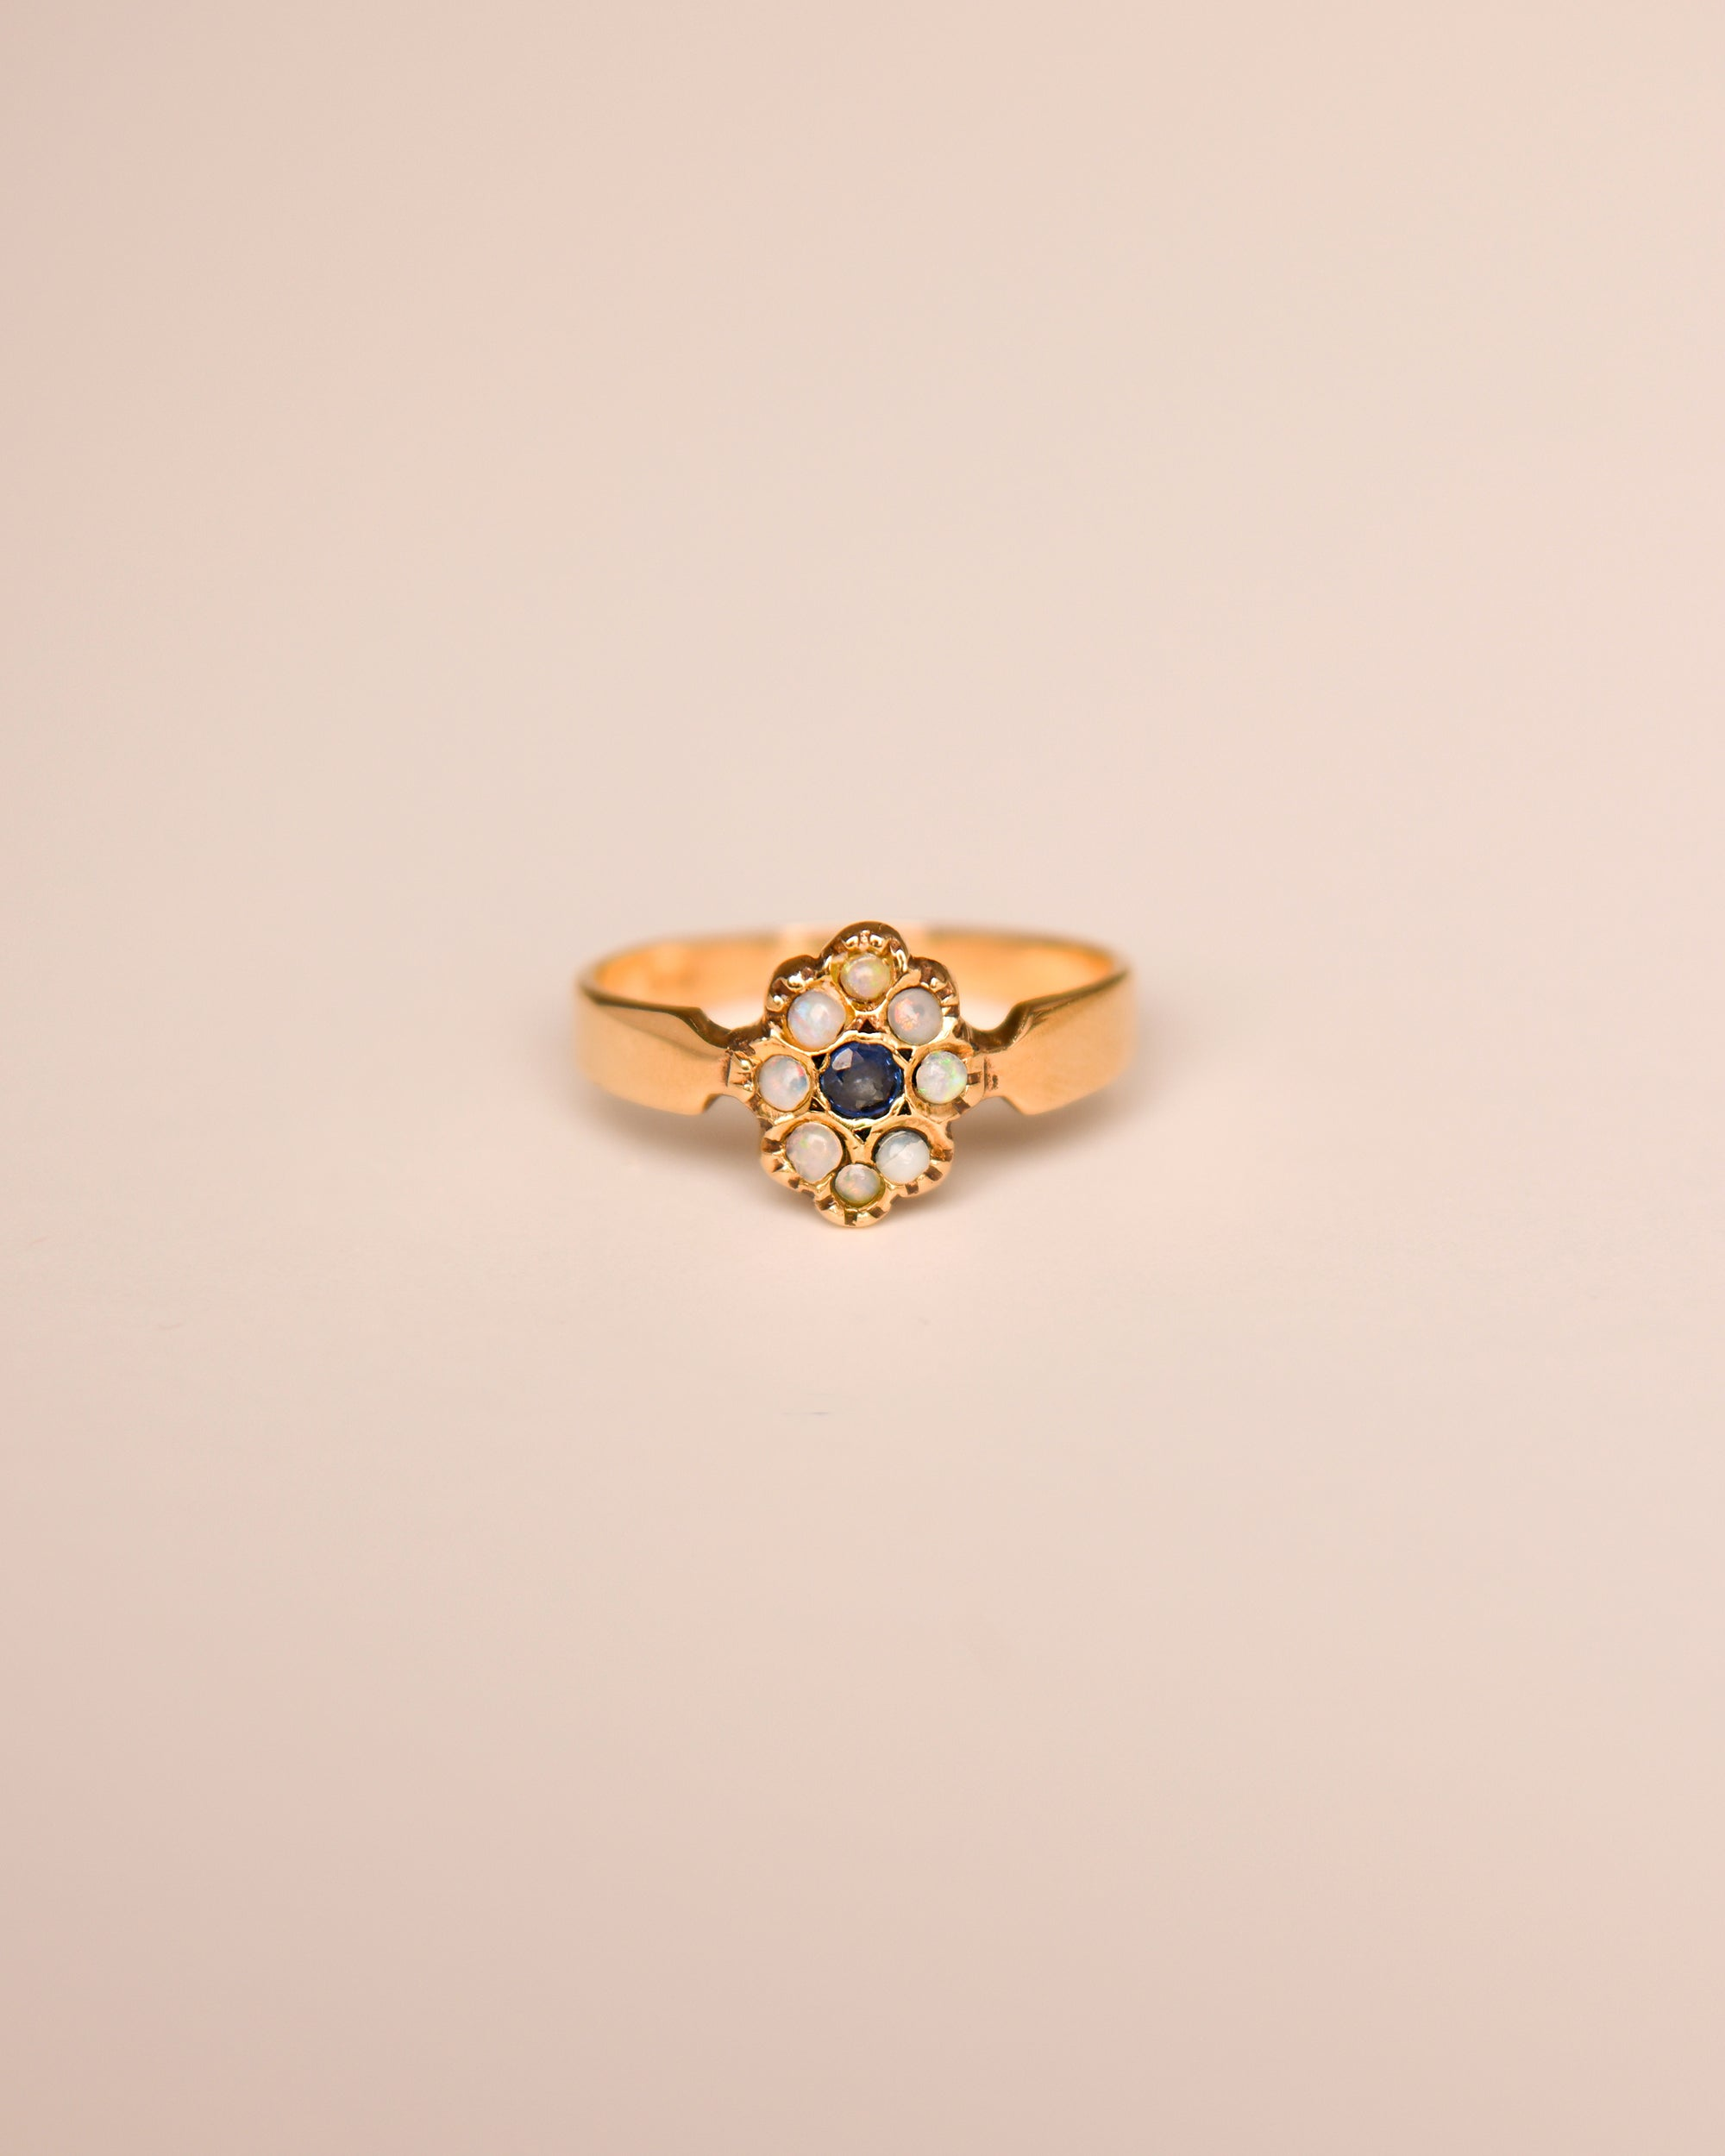 Image of Mirabelle 9ct Gold Vintage Opal & Sapphire Ring